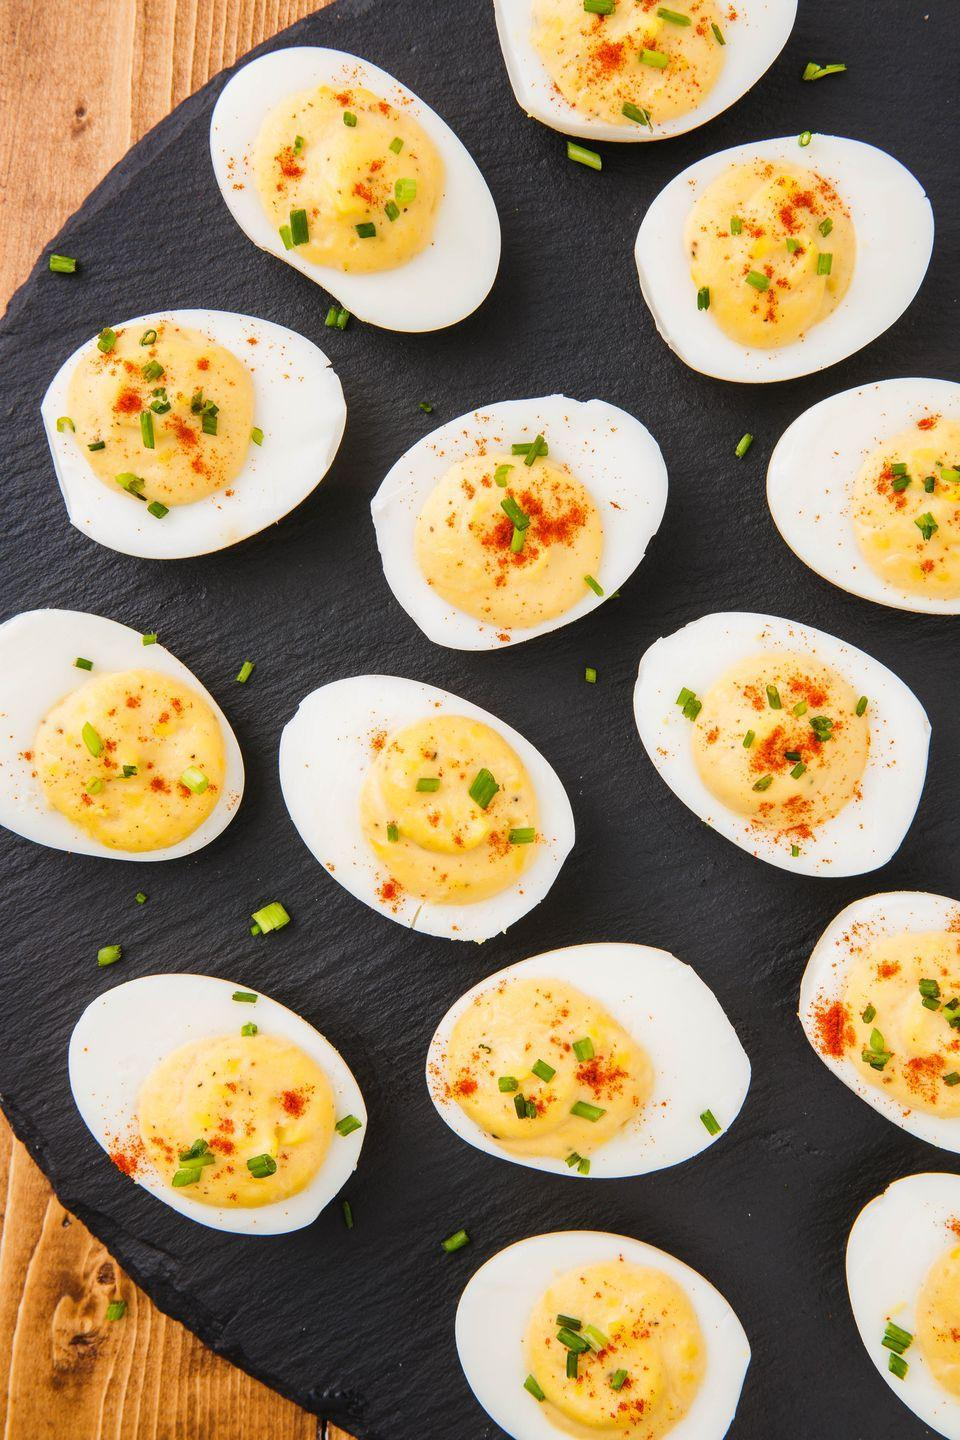 """<p>If you're team <a href=""""https://www.delish.com/cooking/g10/deviled-eggs/"""" rel=""""nofollow noopener"""" target=""""_blank"""" data-ylk=""""slk:deviled eggs"""" class=""""link rapid-noclick-resp"""">deviled eggs</a>, this is the only recipe you'll ever need.</p><p>Get the recipe from <a href=""""https://www.delish.com/cooking/recipe-ideas/a51851/classic-deviled-eggs-recipe/"""" rel=""""nofollow noopener"""" target=""""_blank"""" data-ylk=""""slk:Delish"""" class=""""link rapid-noclick-resp"""">Delish</a>.</p>"""